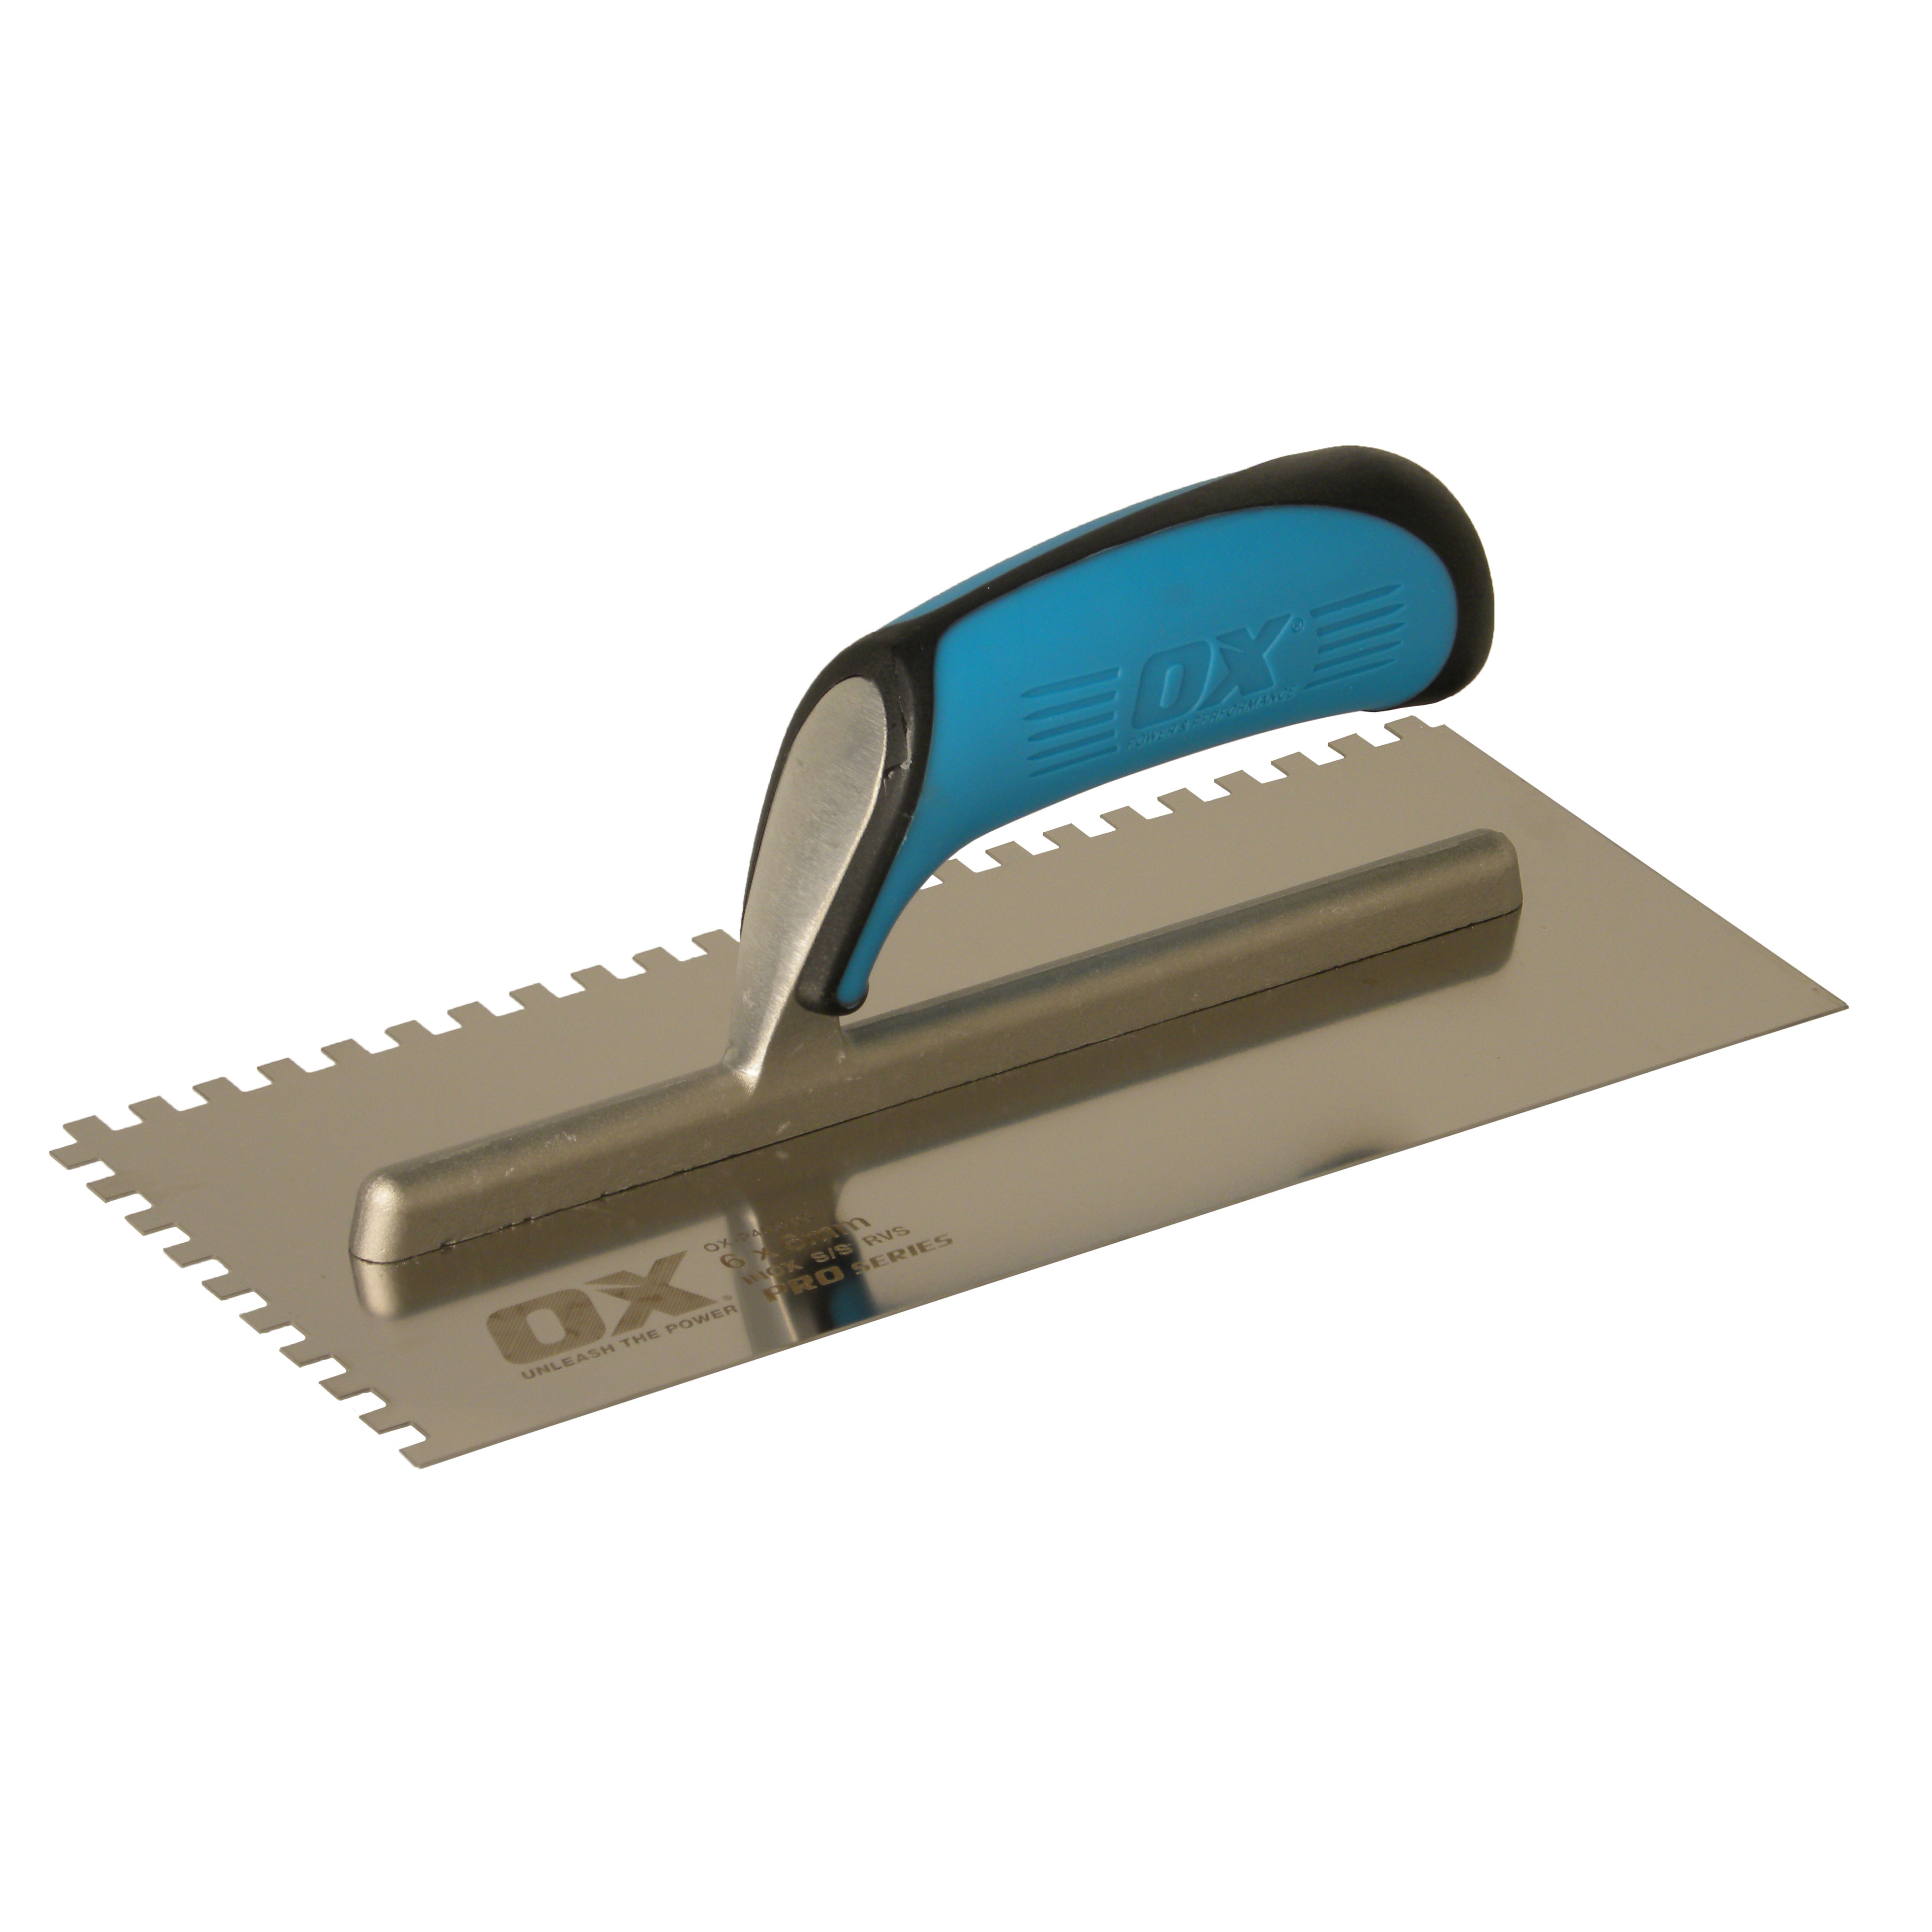 Fixkam Softgrip OX Tools